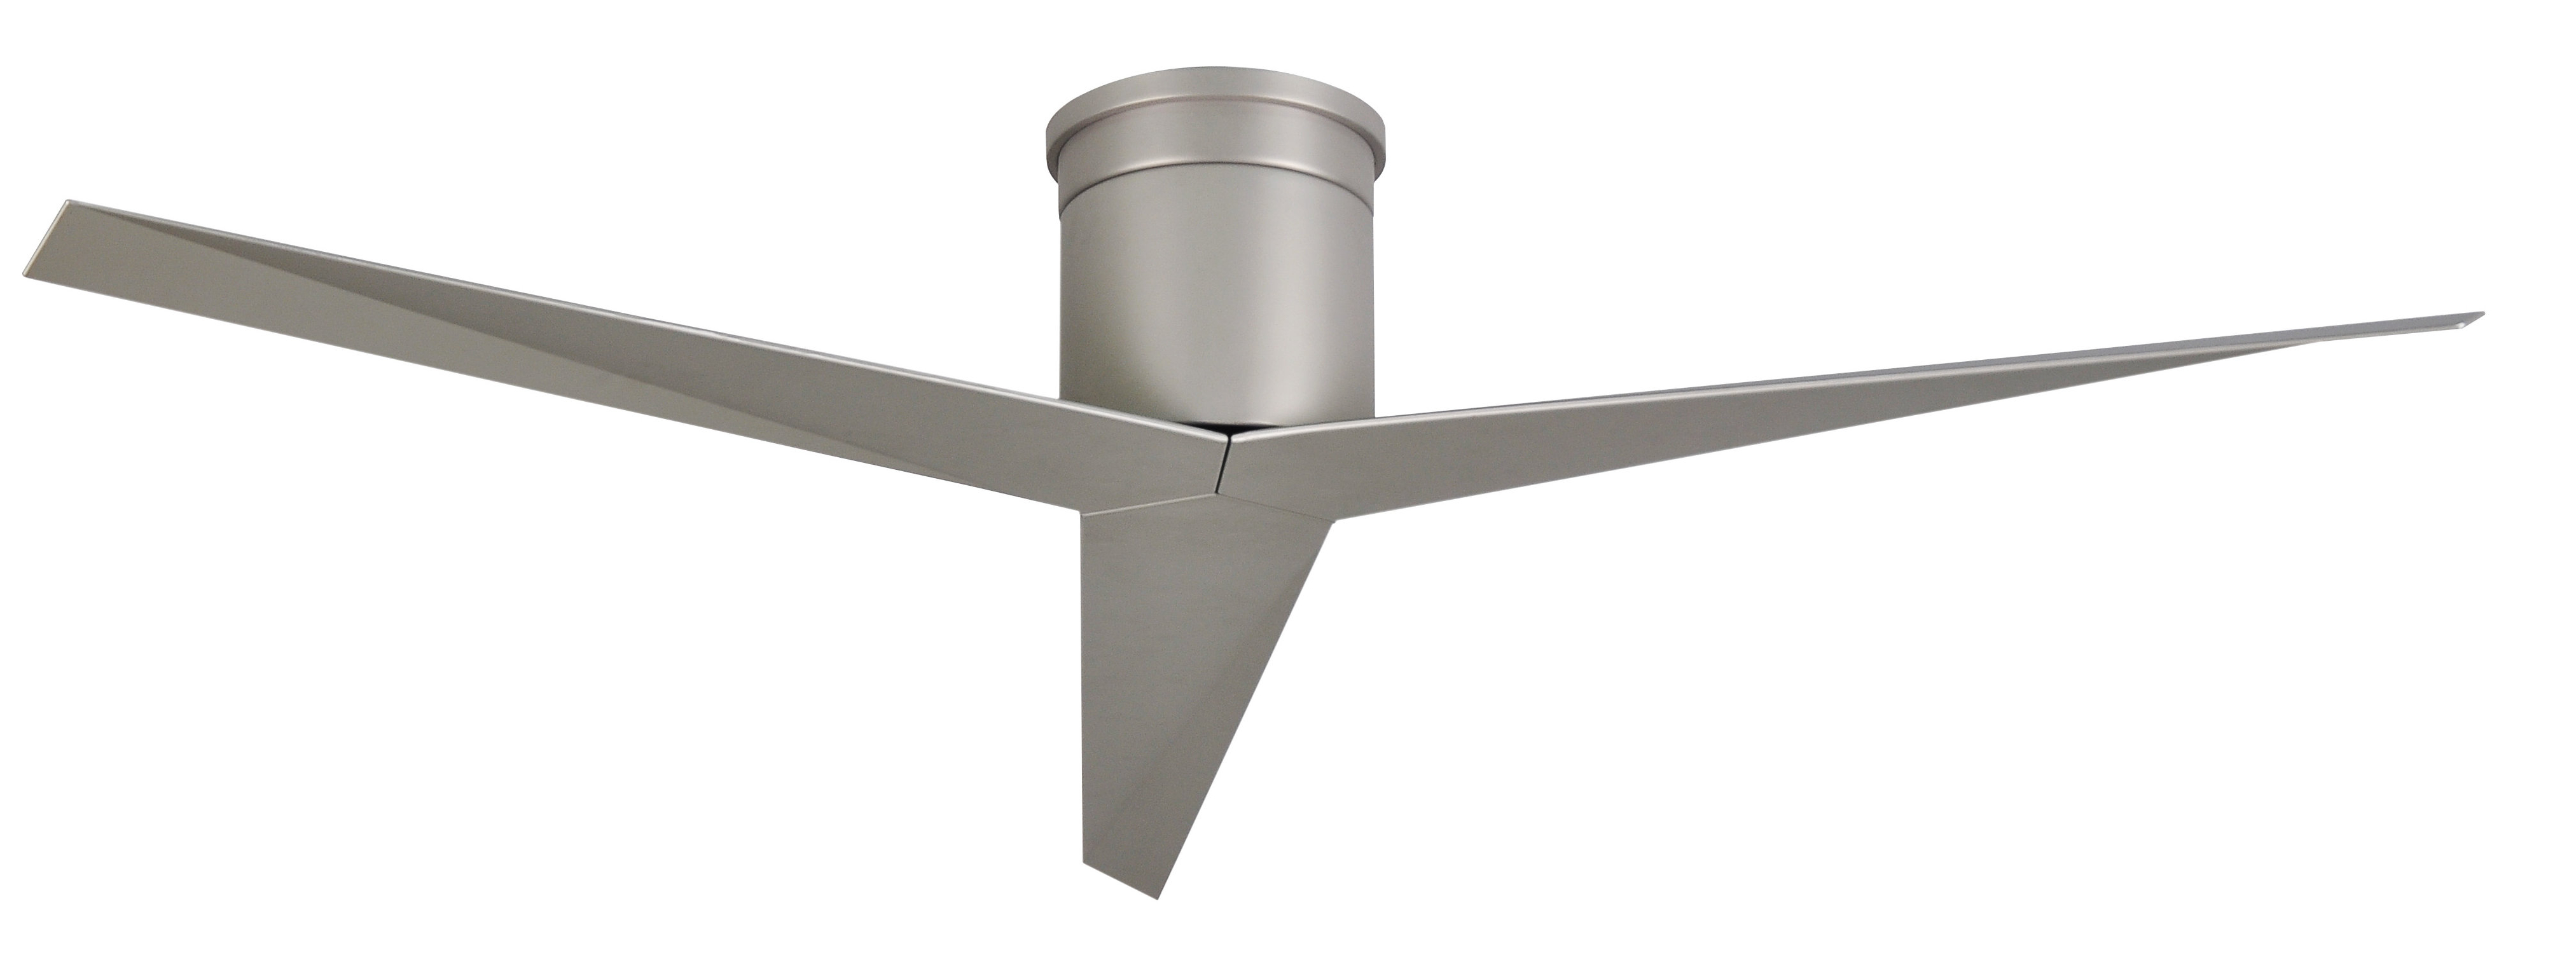 """Hedin 3 Blade Hugger Ceiling Fans Throughout Current Orren Ellis 56"""" Hedin 3 Blade Hugger Ceiling Fan With Remote (Gallery 4 of 20)"""